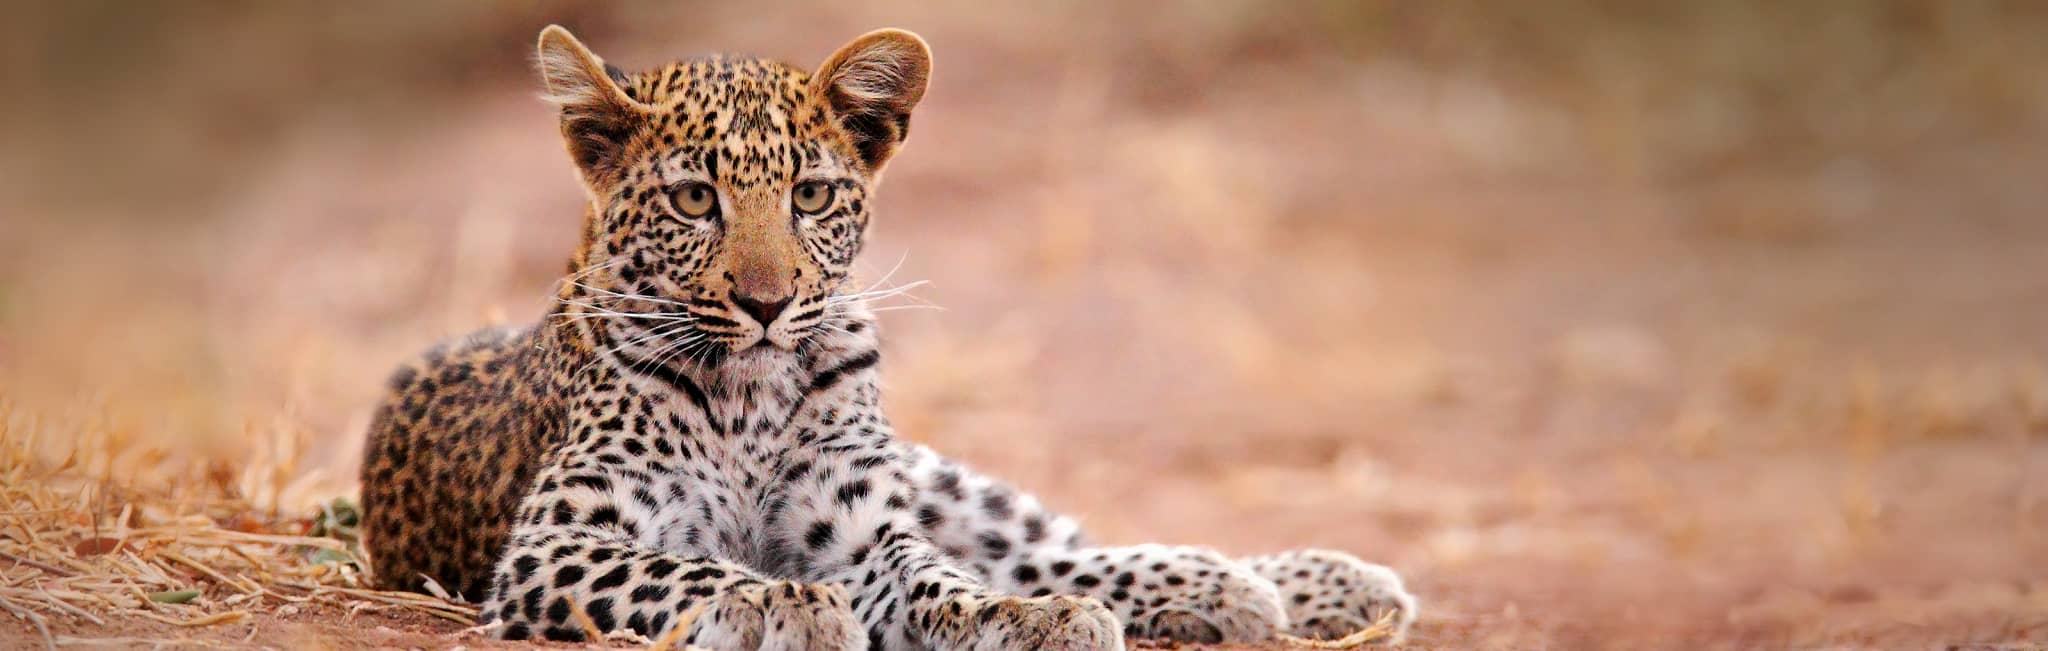 Young African leopard in Hwange National Park, Zimbabwe